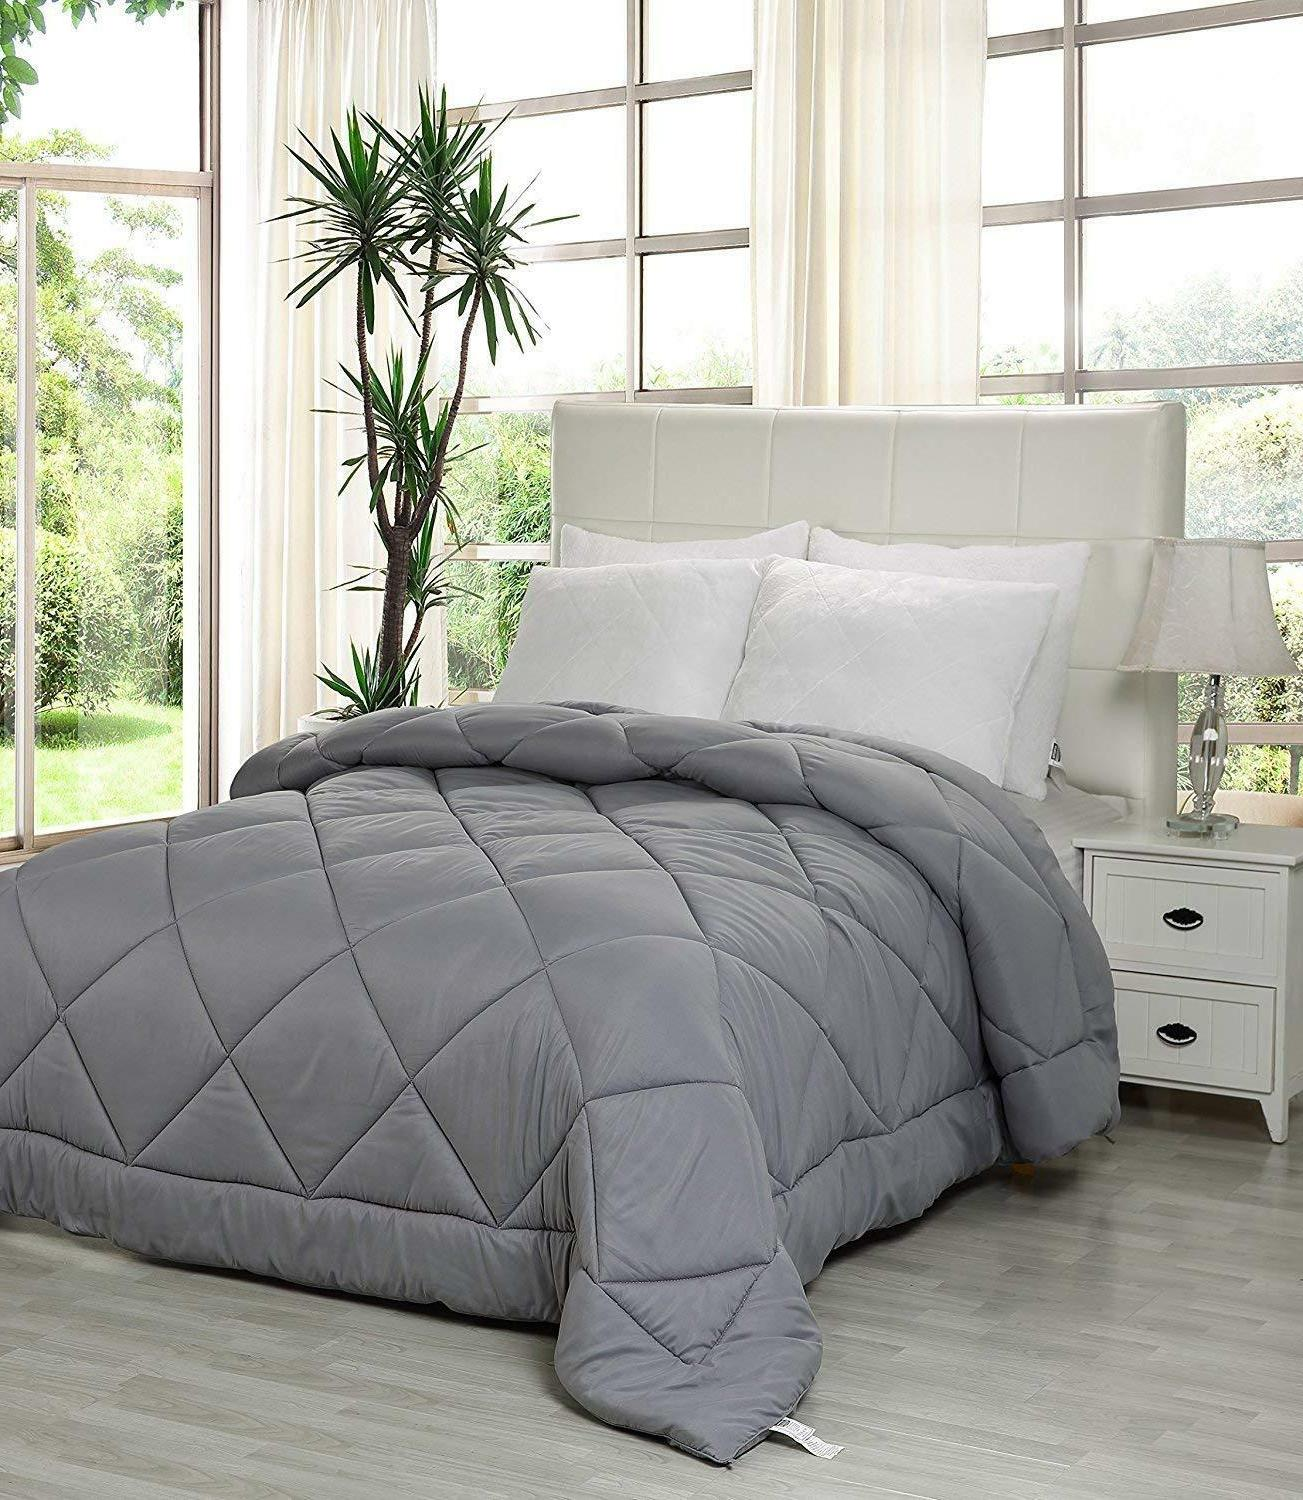 Utopia Bedding Quilted with Tabs - Plush